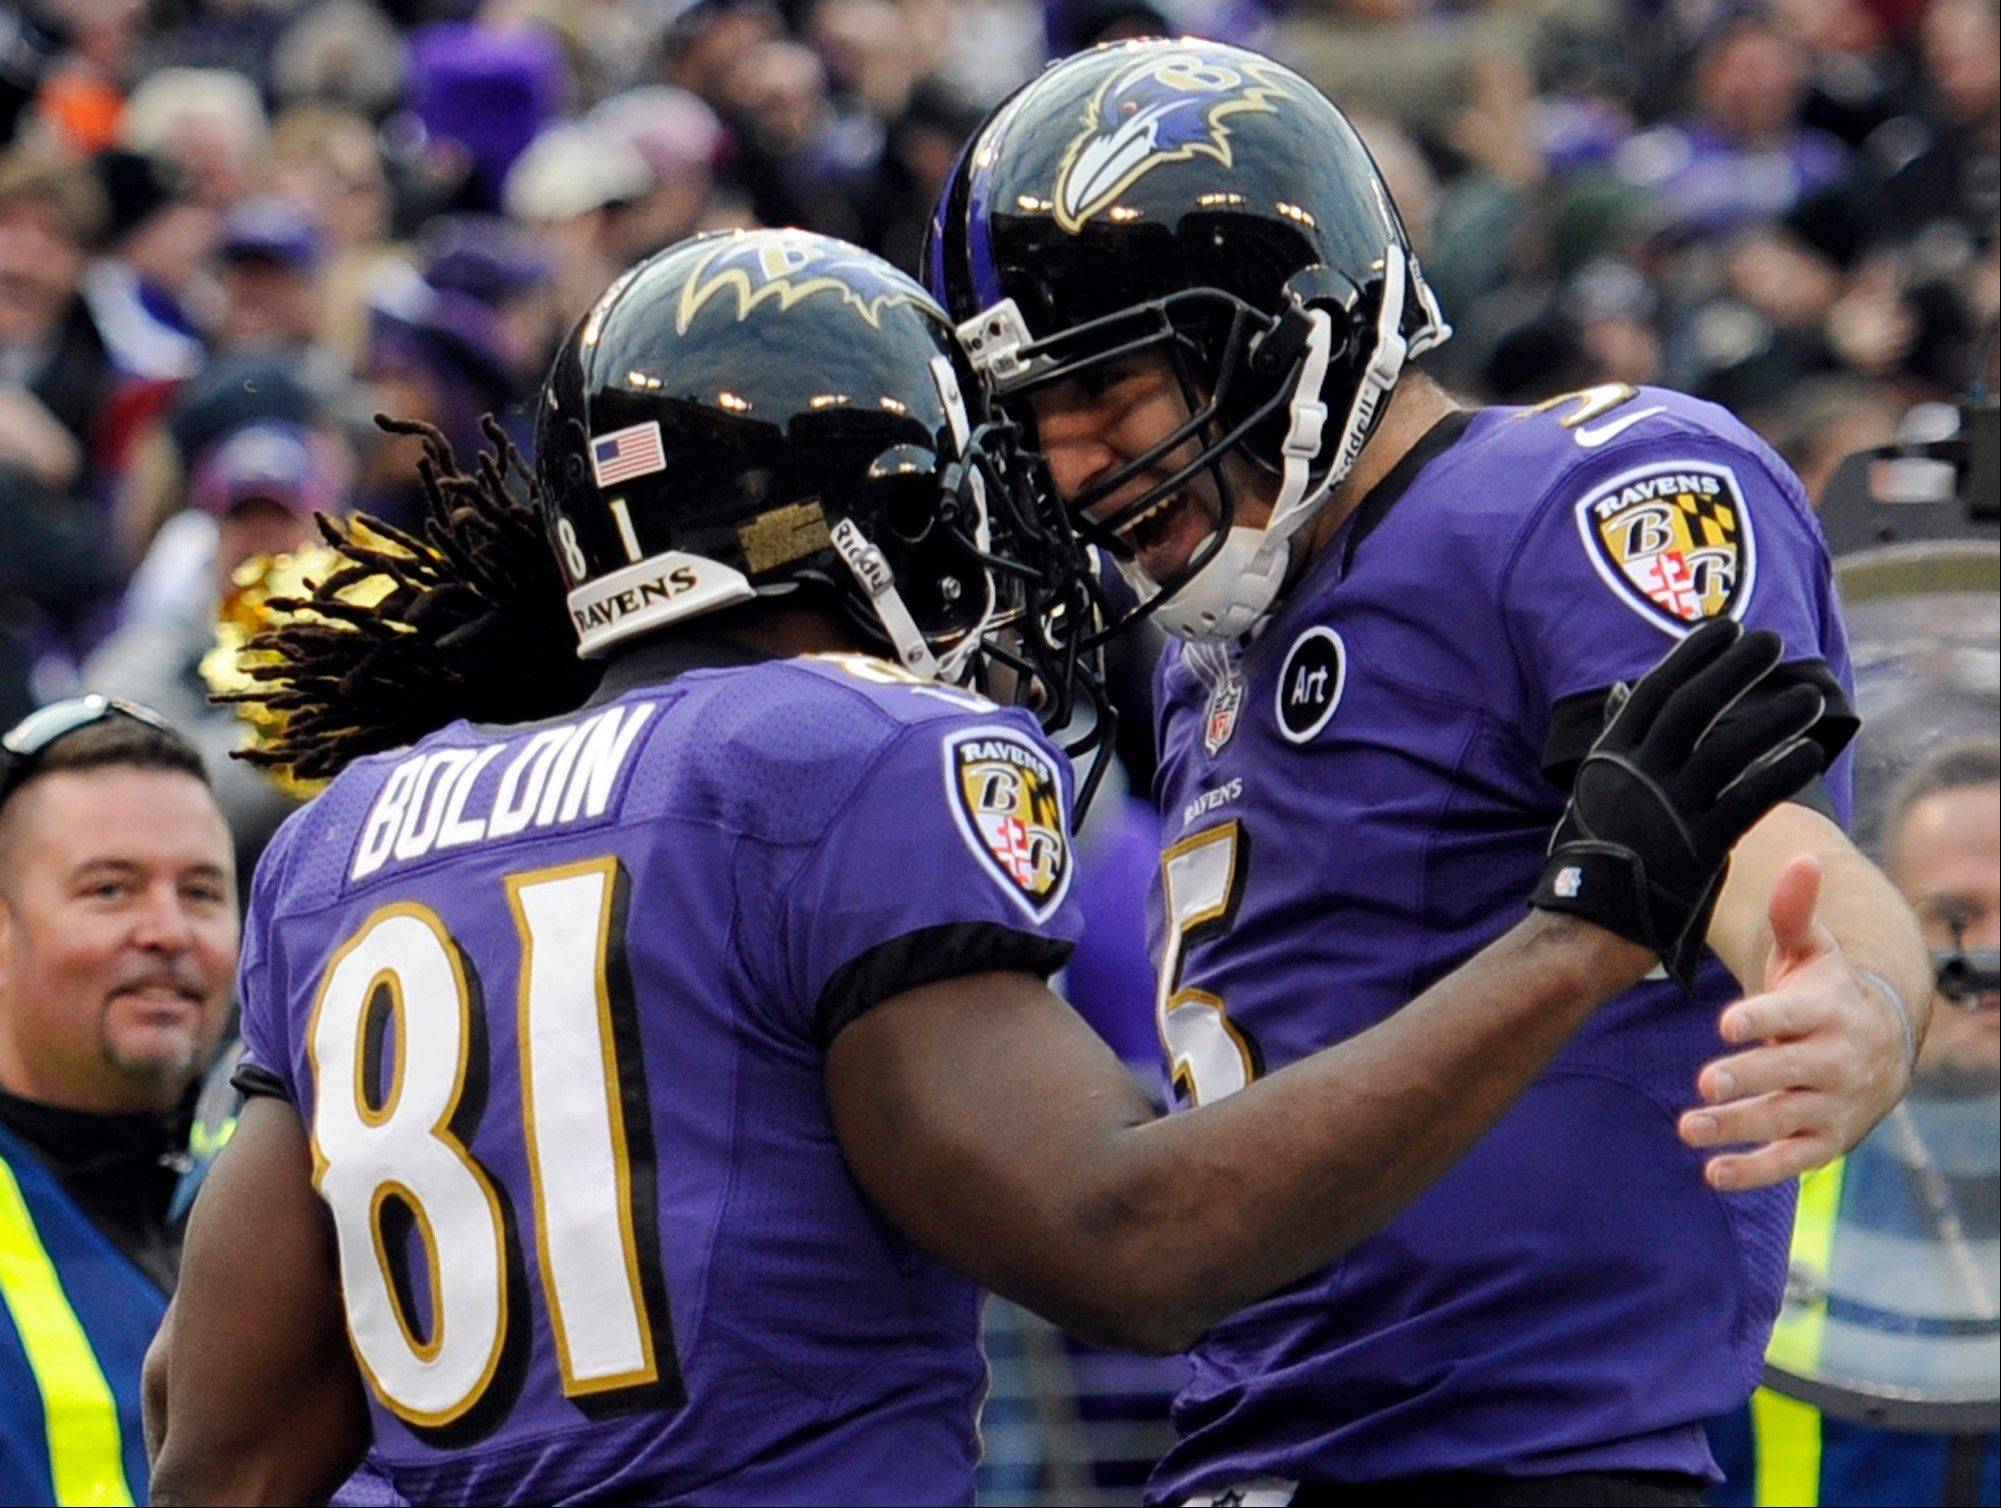 Baltimore Ravens wide receiver Anquan Boldin (81) celebrates his touchdown catch with quarterback Joe Flacco (5) during the second half of an NFL wild card playoff football game against the Indianapolis Colts Sunday, Jan. 6, 2013, in Baltimore.